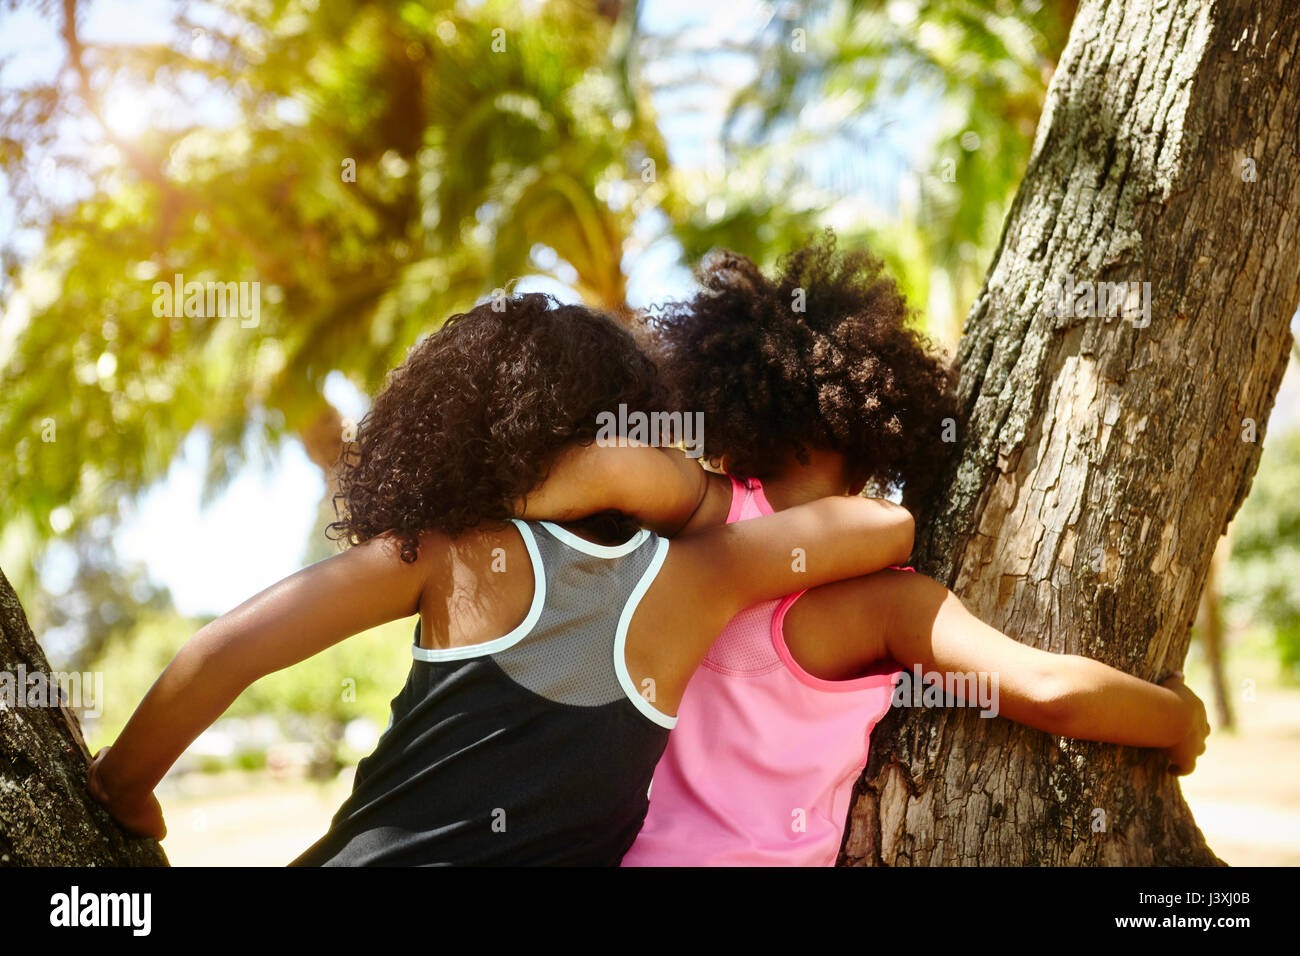 Two young sisters playing on tree. rear view - Stock Image